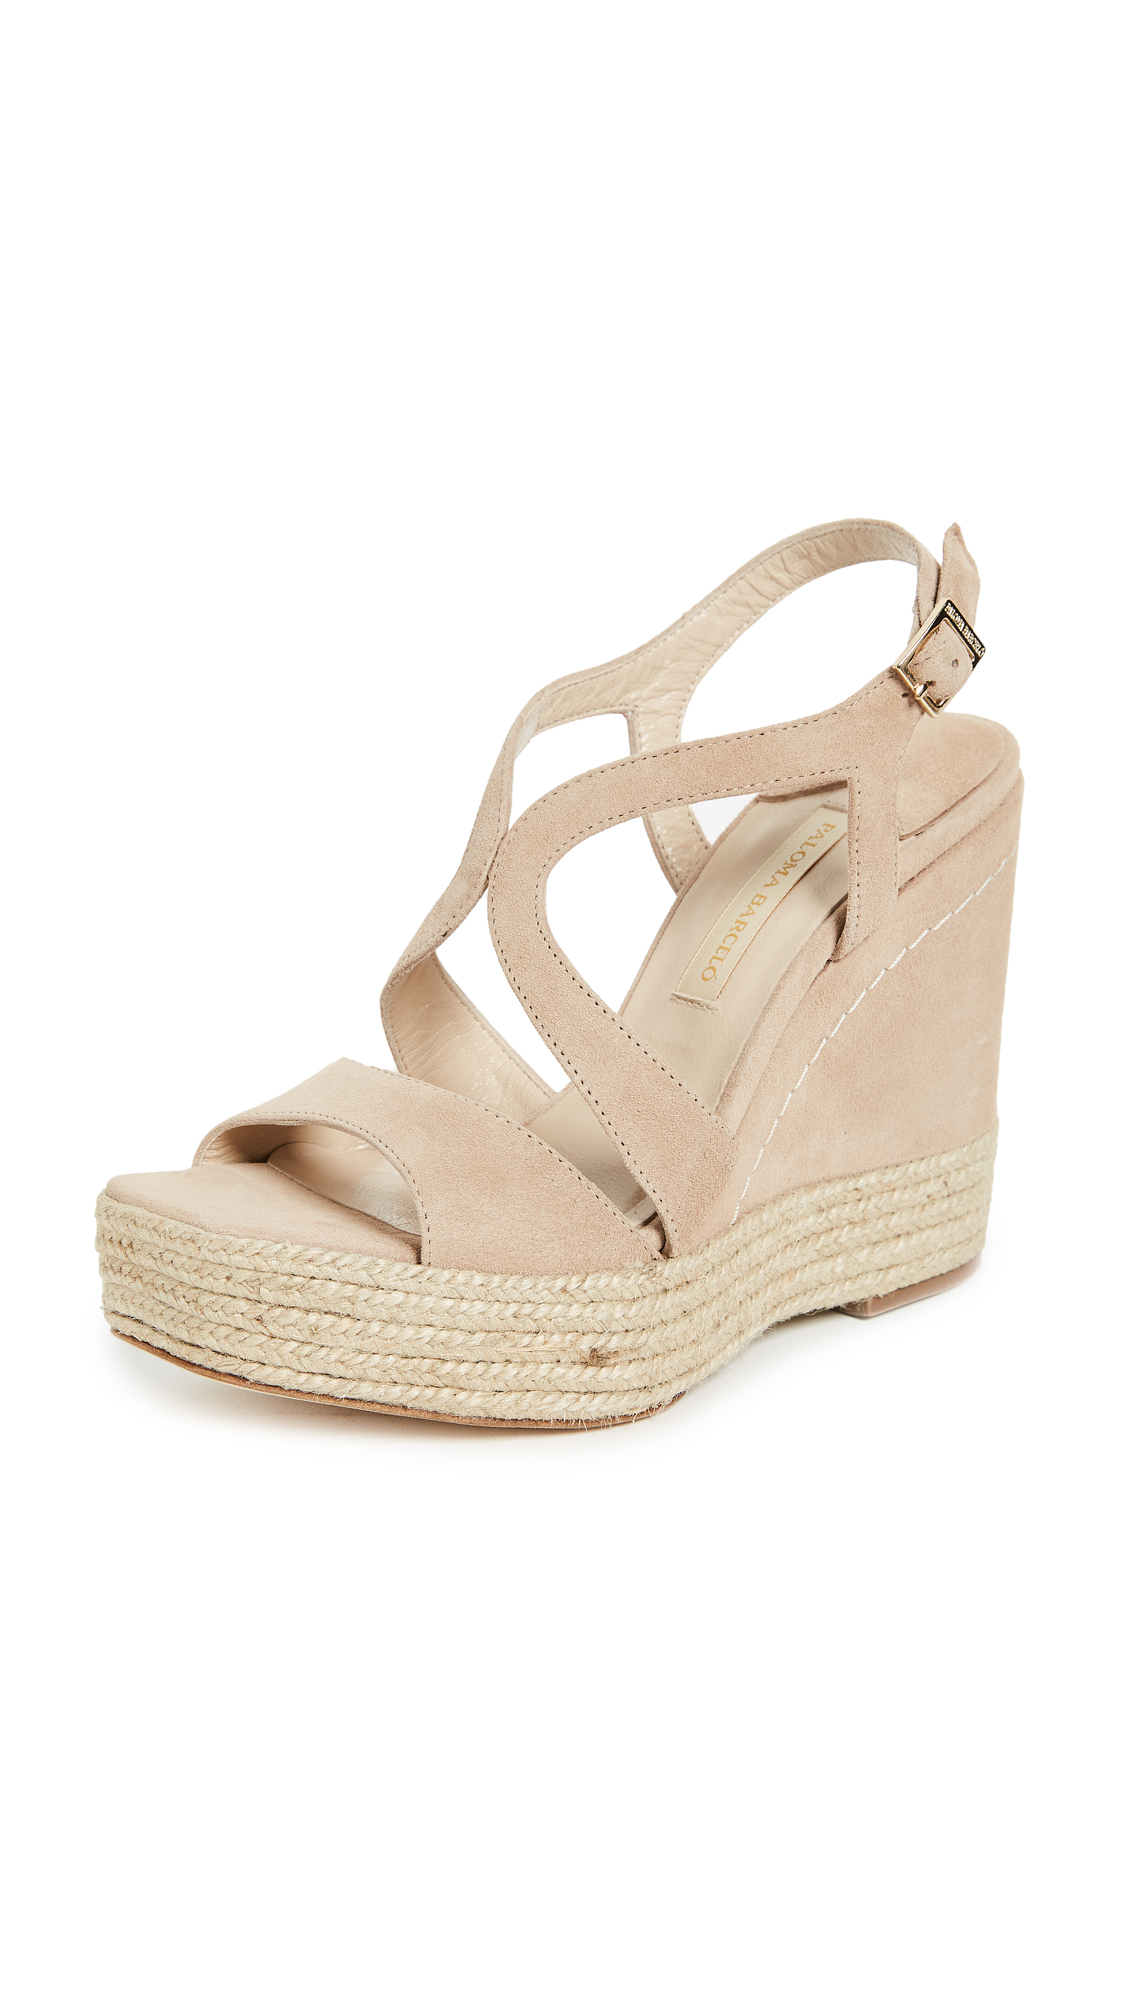 Paloma Barcelo Mafafa Wedge Sandals - Taupe